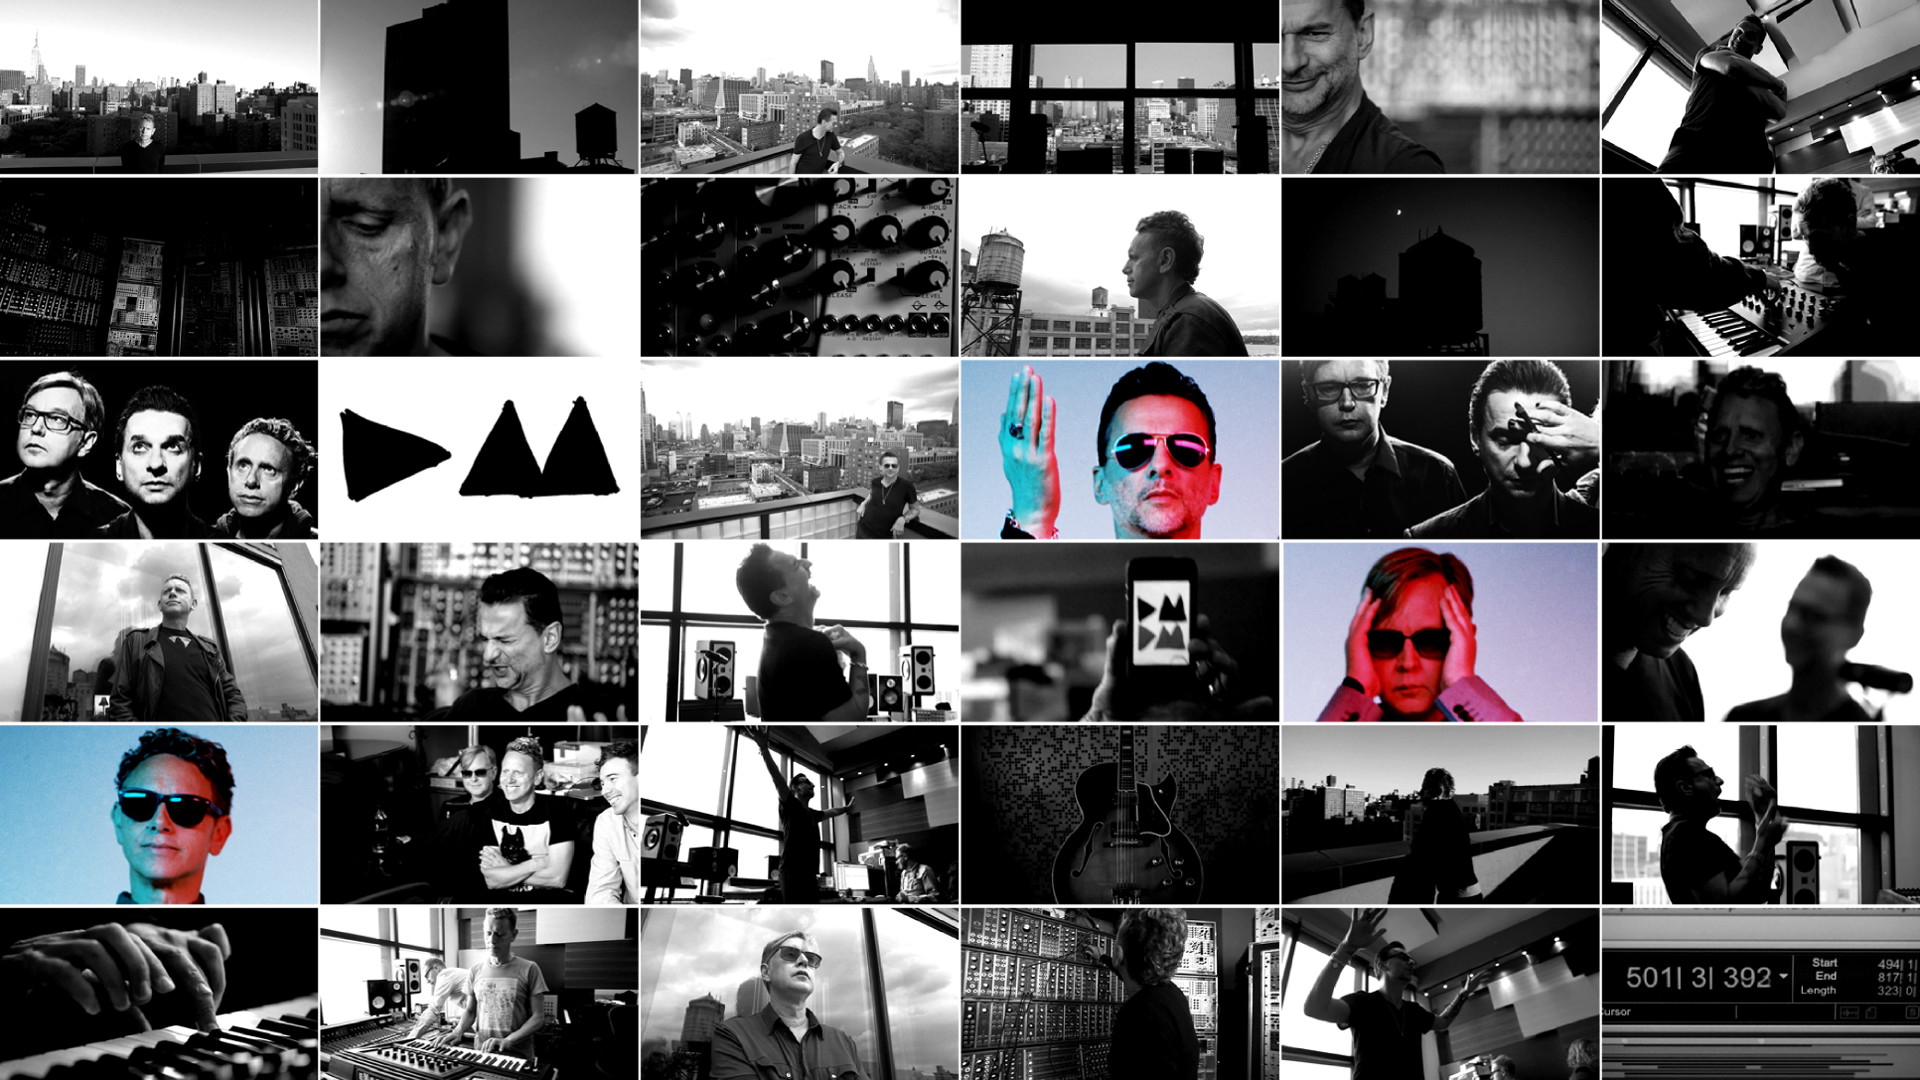 1920x1080 ... Depeche Mode : In-Studio Collage 2012 -11- by IDAlizes